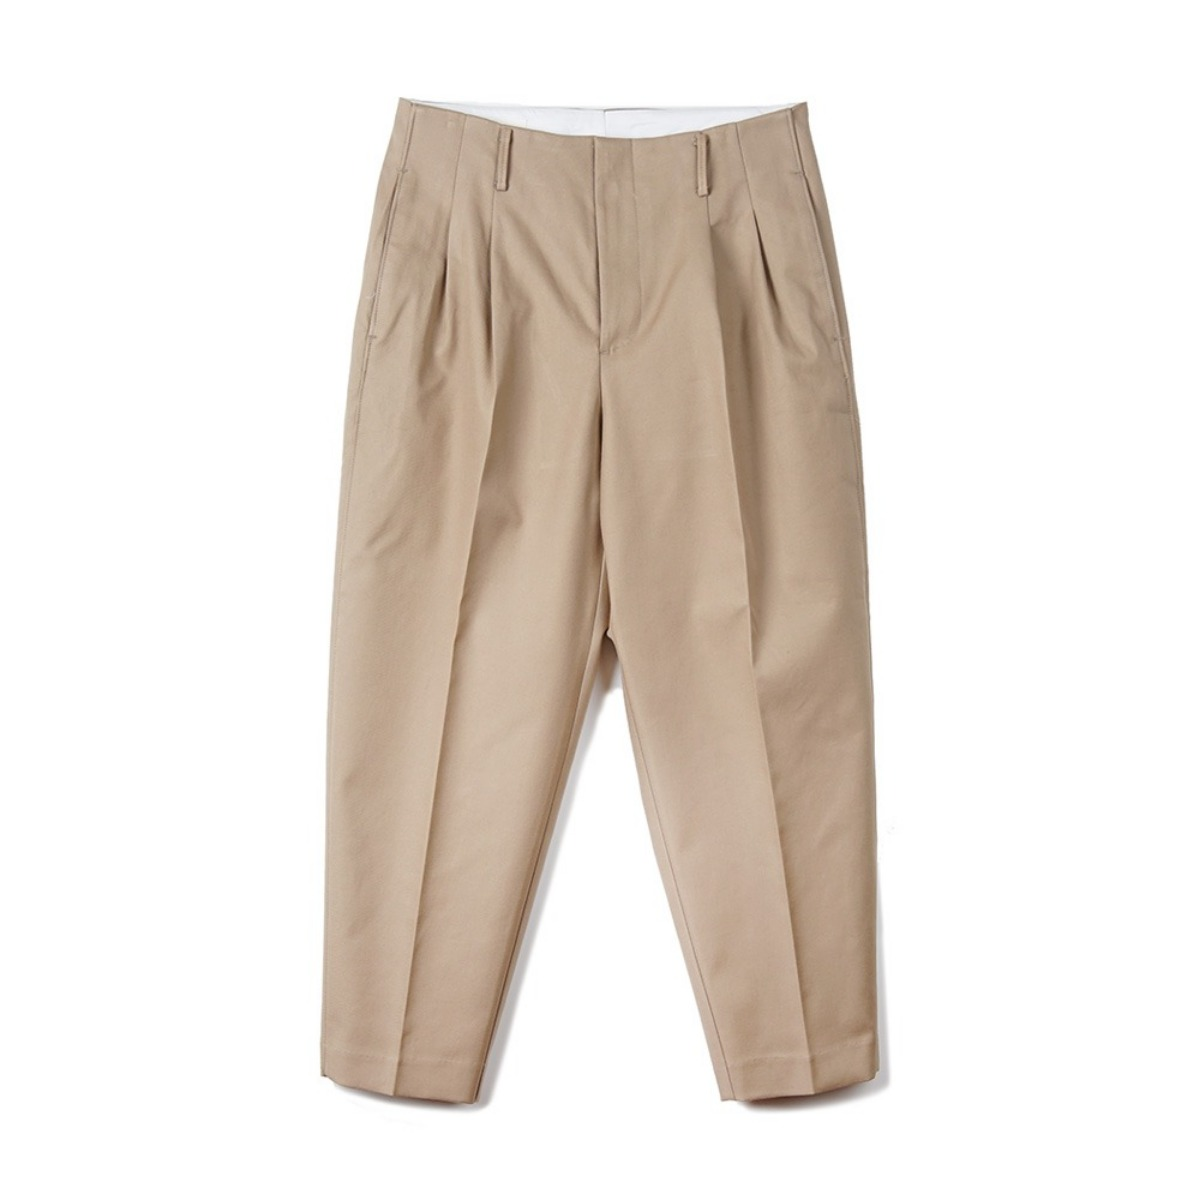 [OOPARTS] OPT18FWPT01OL CARROT-FIT CLASSIC PANTS 'KHAKI'